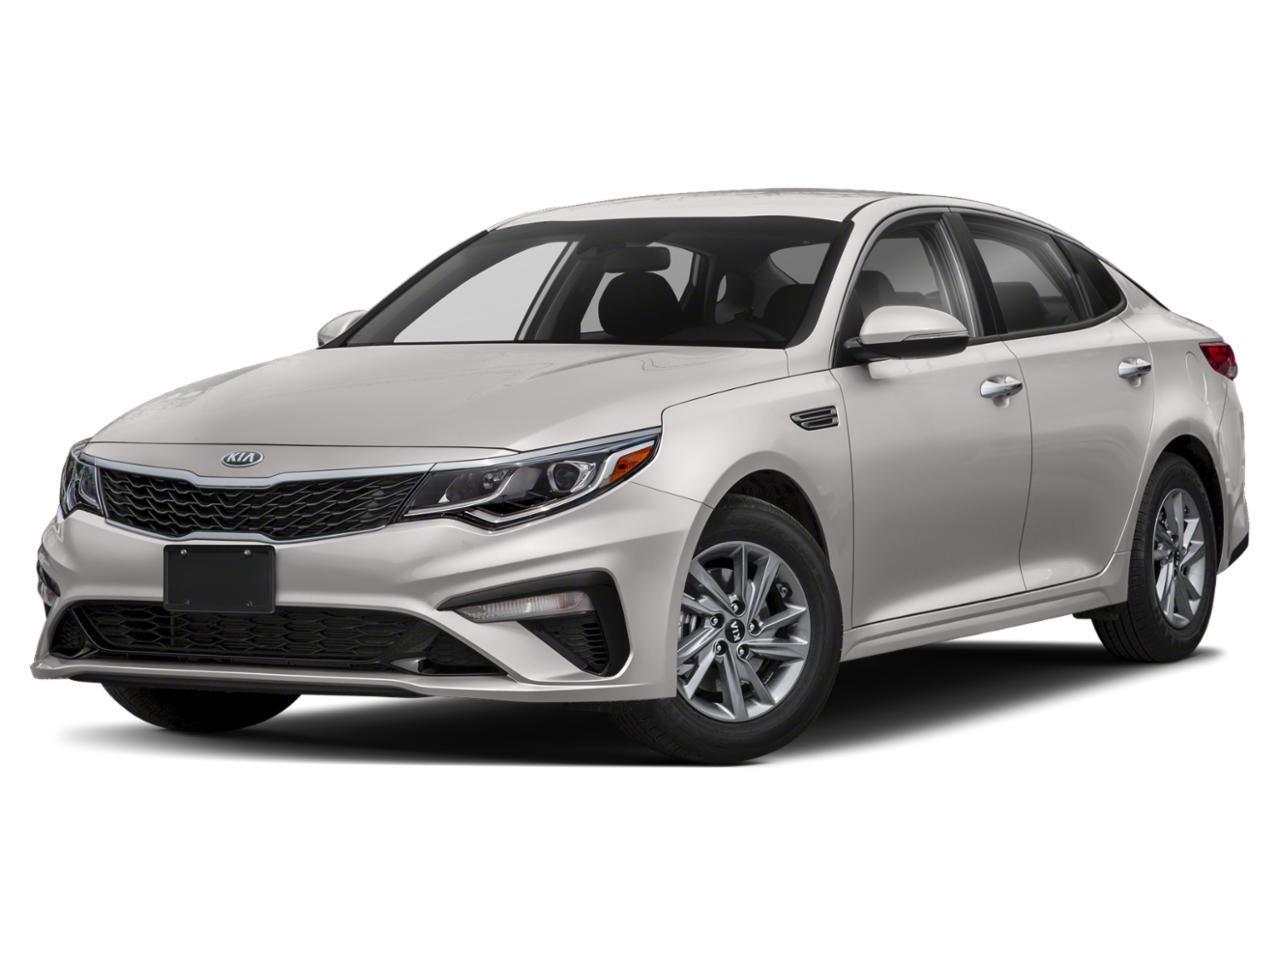 2019 Kia Optima Vehicle Photo in Sheffield, AL 35660